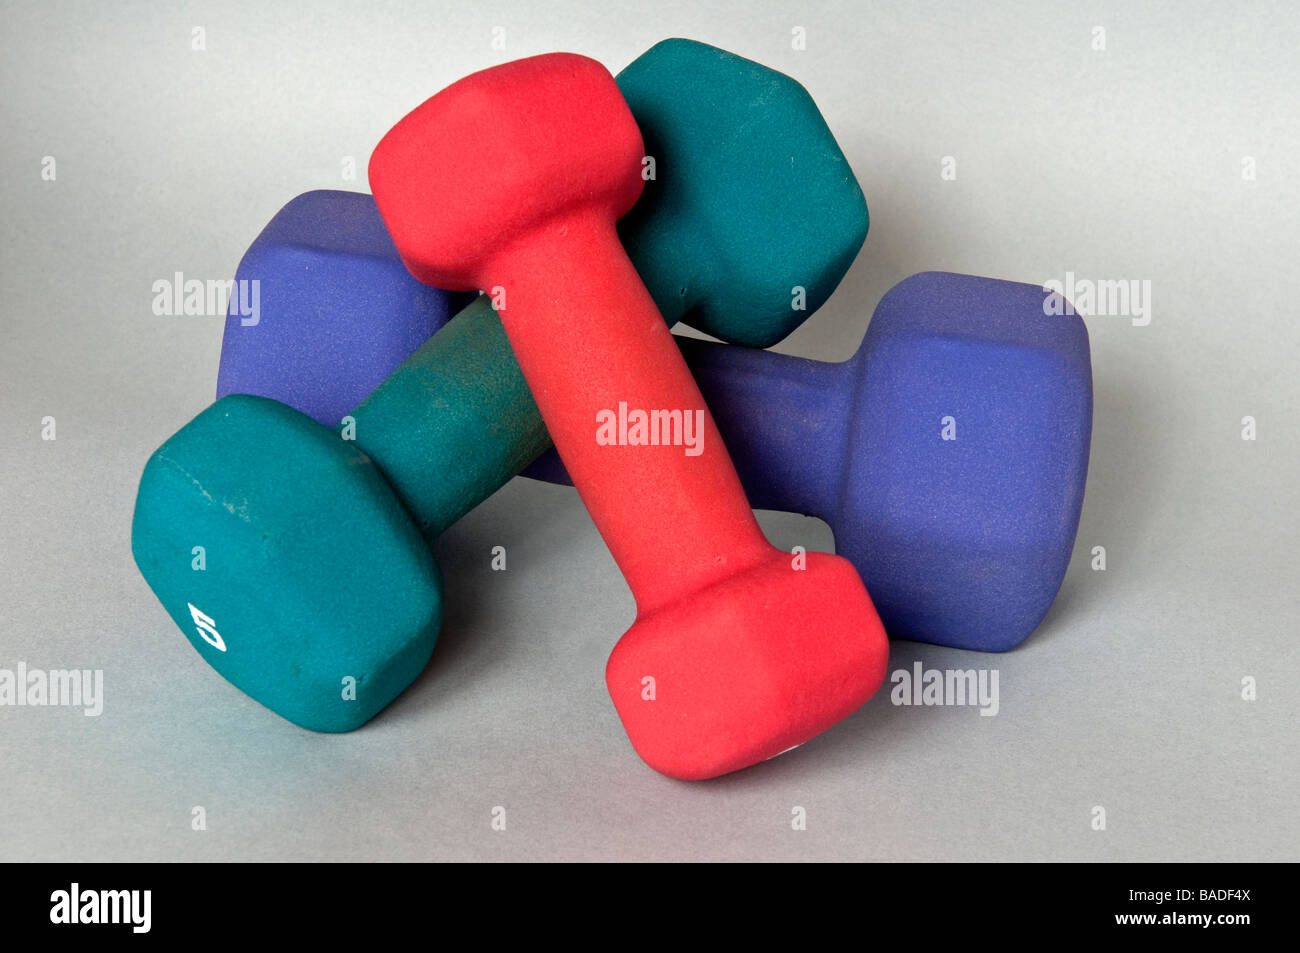 Green blue and red dumbells - Stock Image